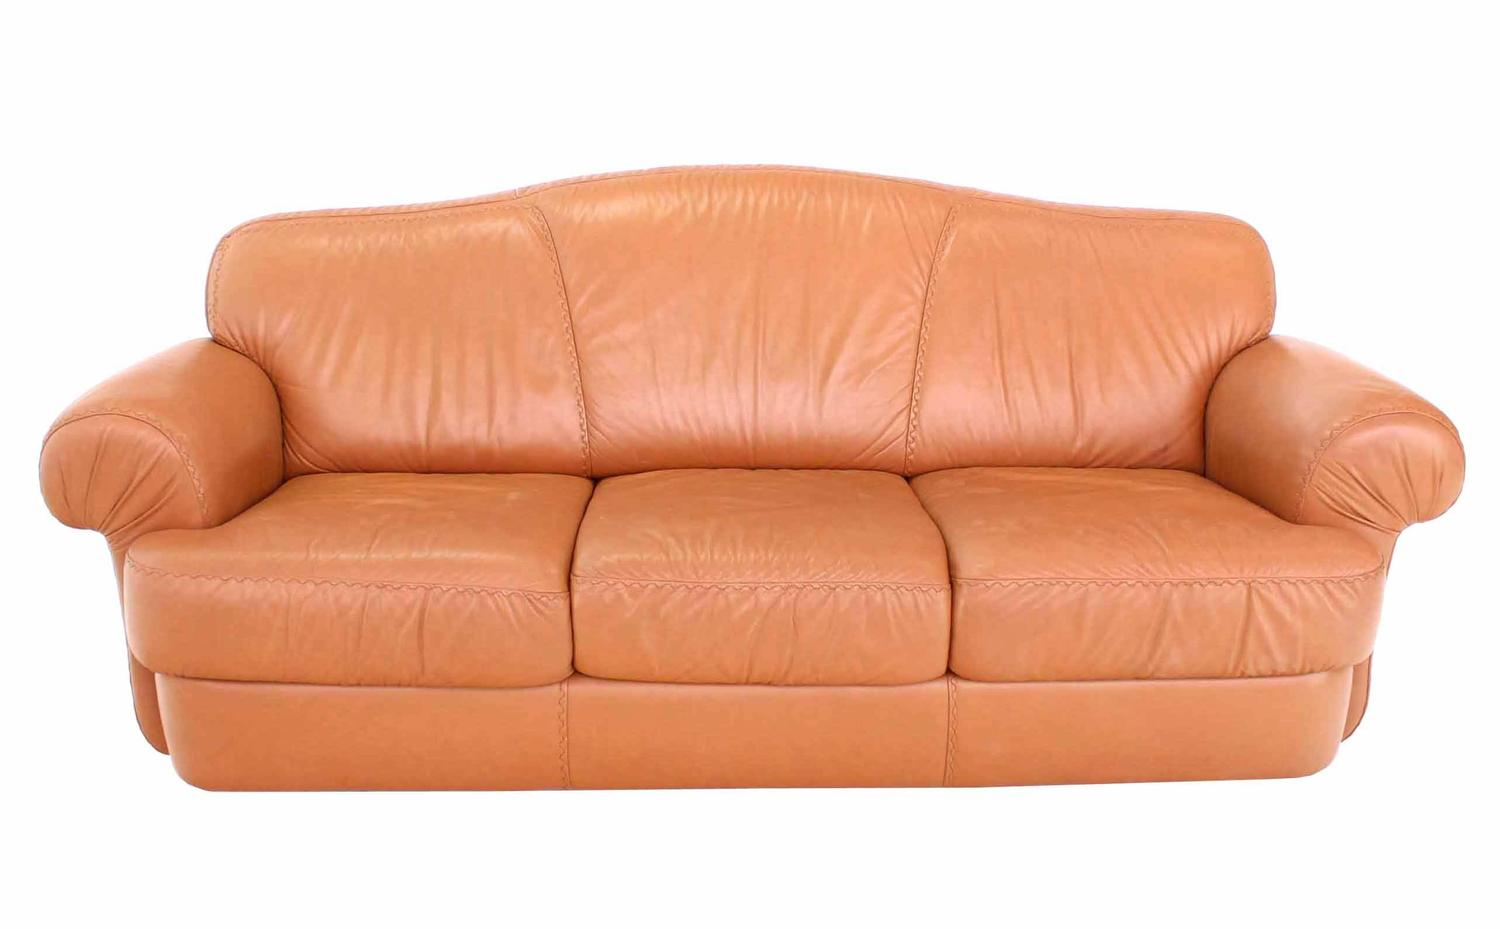 baseball leather sofa fabric and in same room pair of tan decorative style stitching